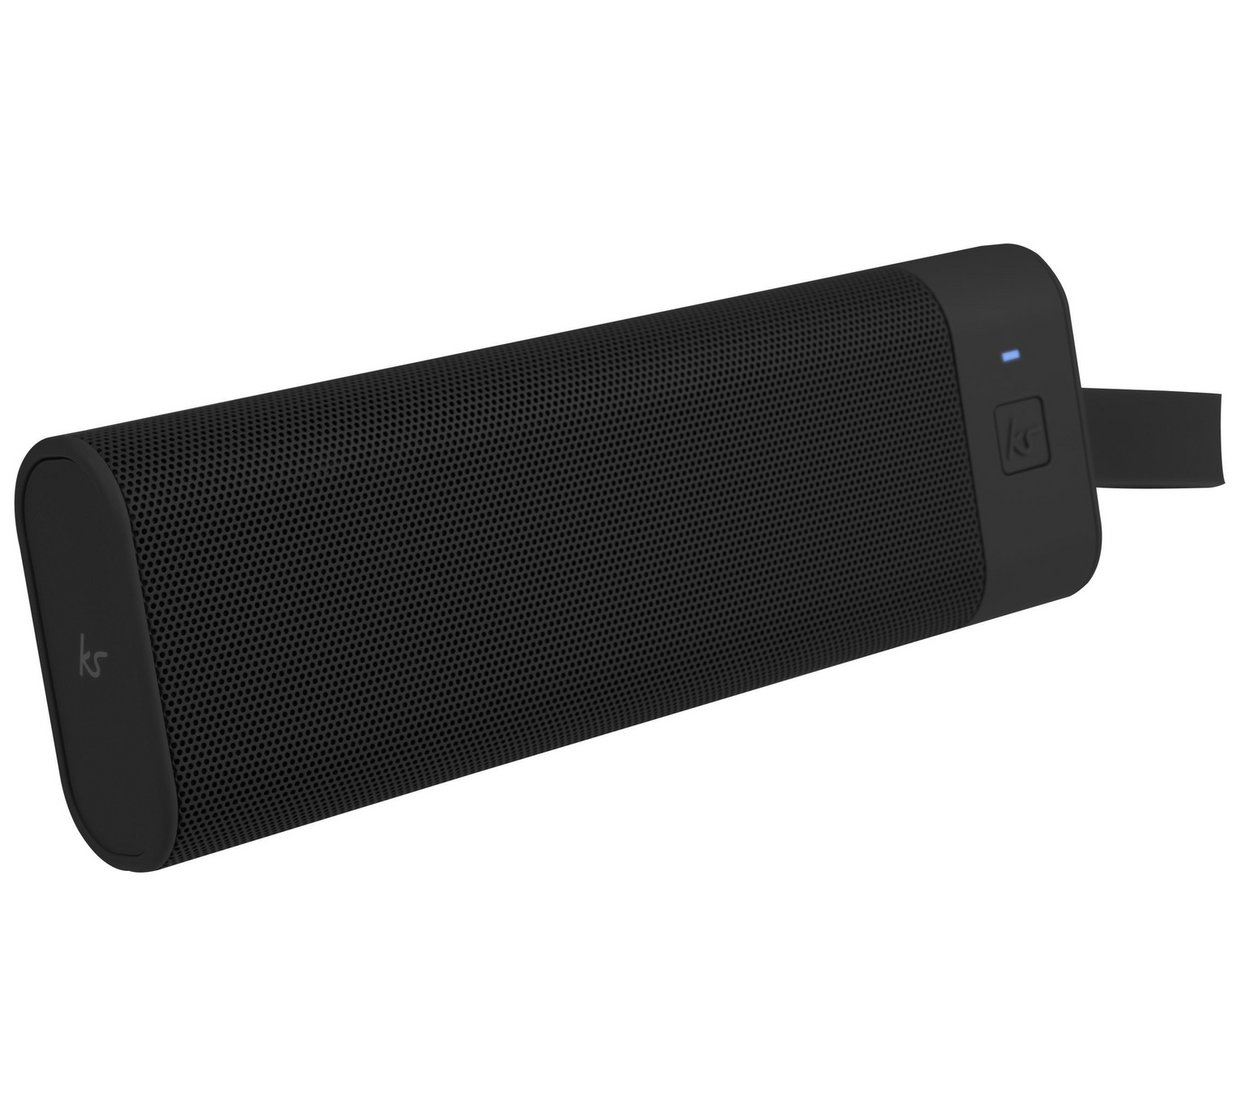 We desperately need a second pair of Bluetooth Speakers to play show tunes, songs, sound effects, movie themes and a whole range of other audio material that is impractical to play on a record player. It is also extremely lightweight and portable and perfect for every venue we visit.